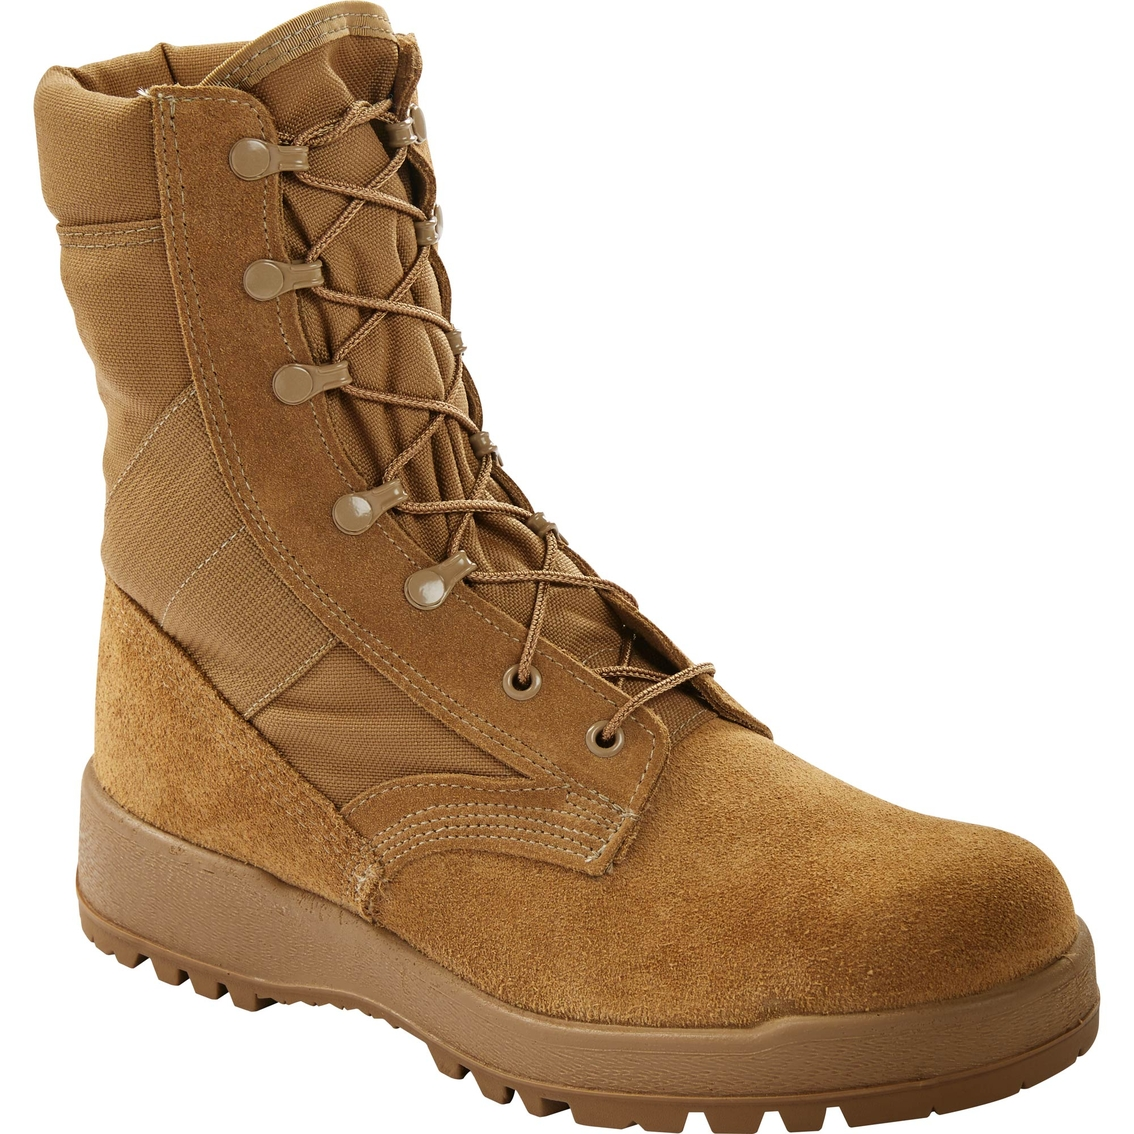 Standard Issue Combat Boots